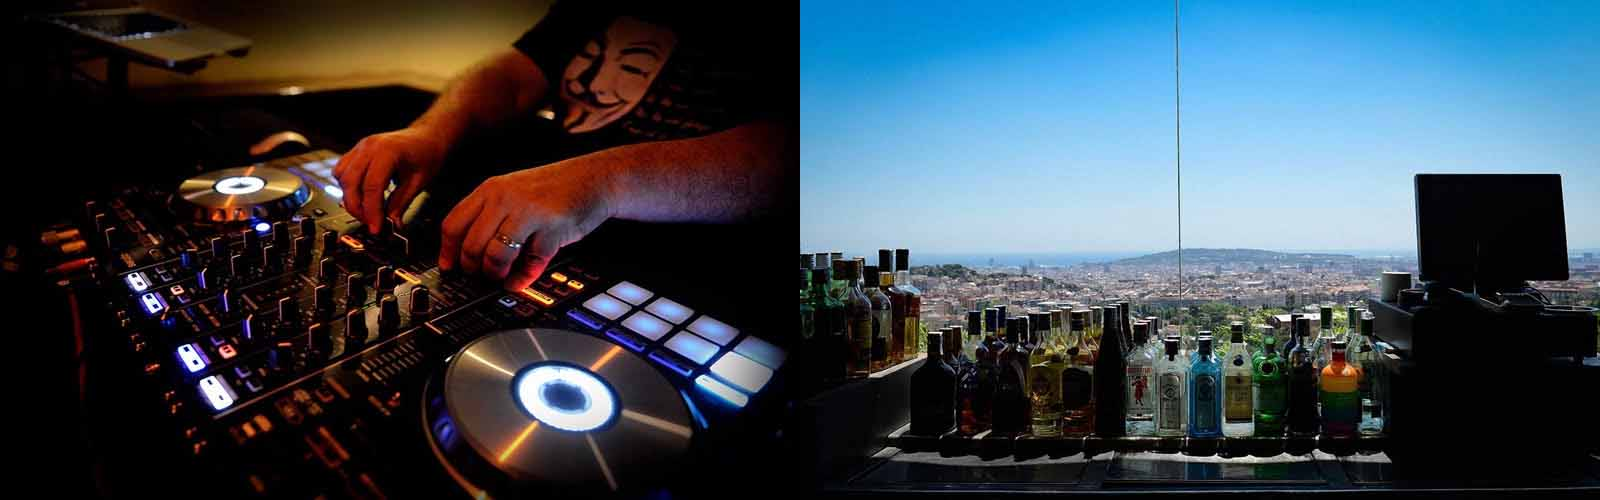 Enjoy the view of Barcelona at Nightclub Mirablau